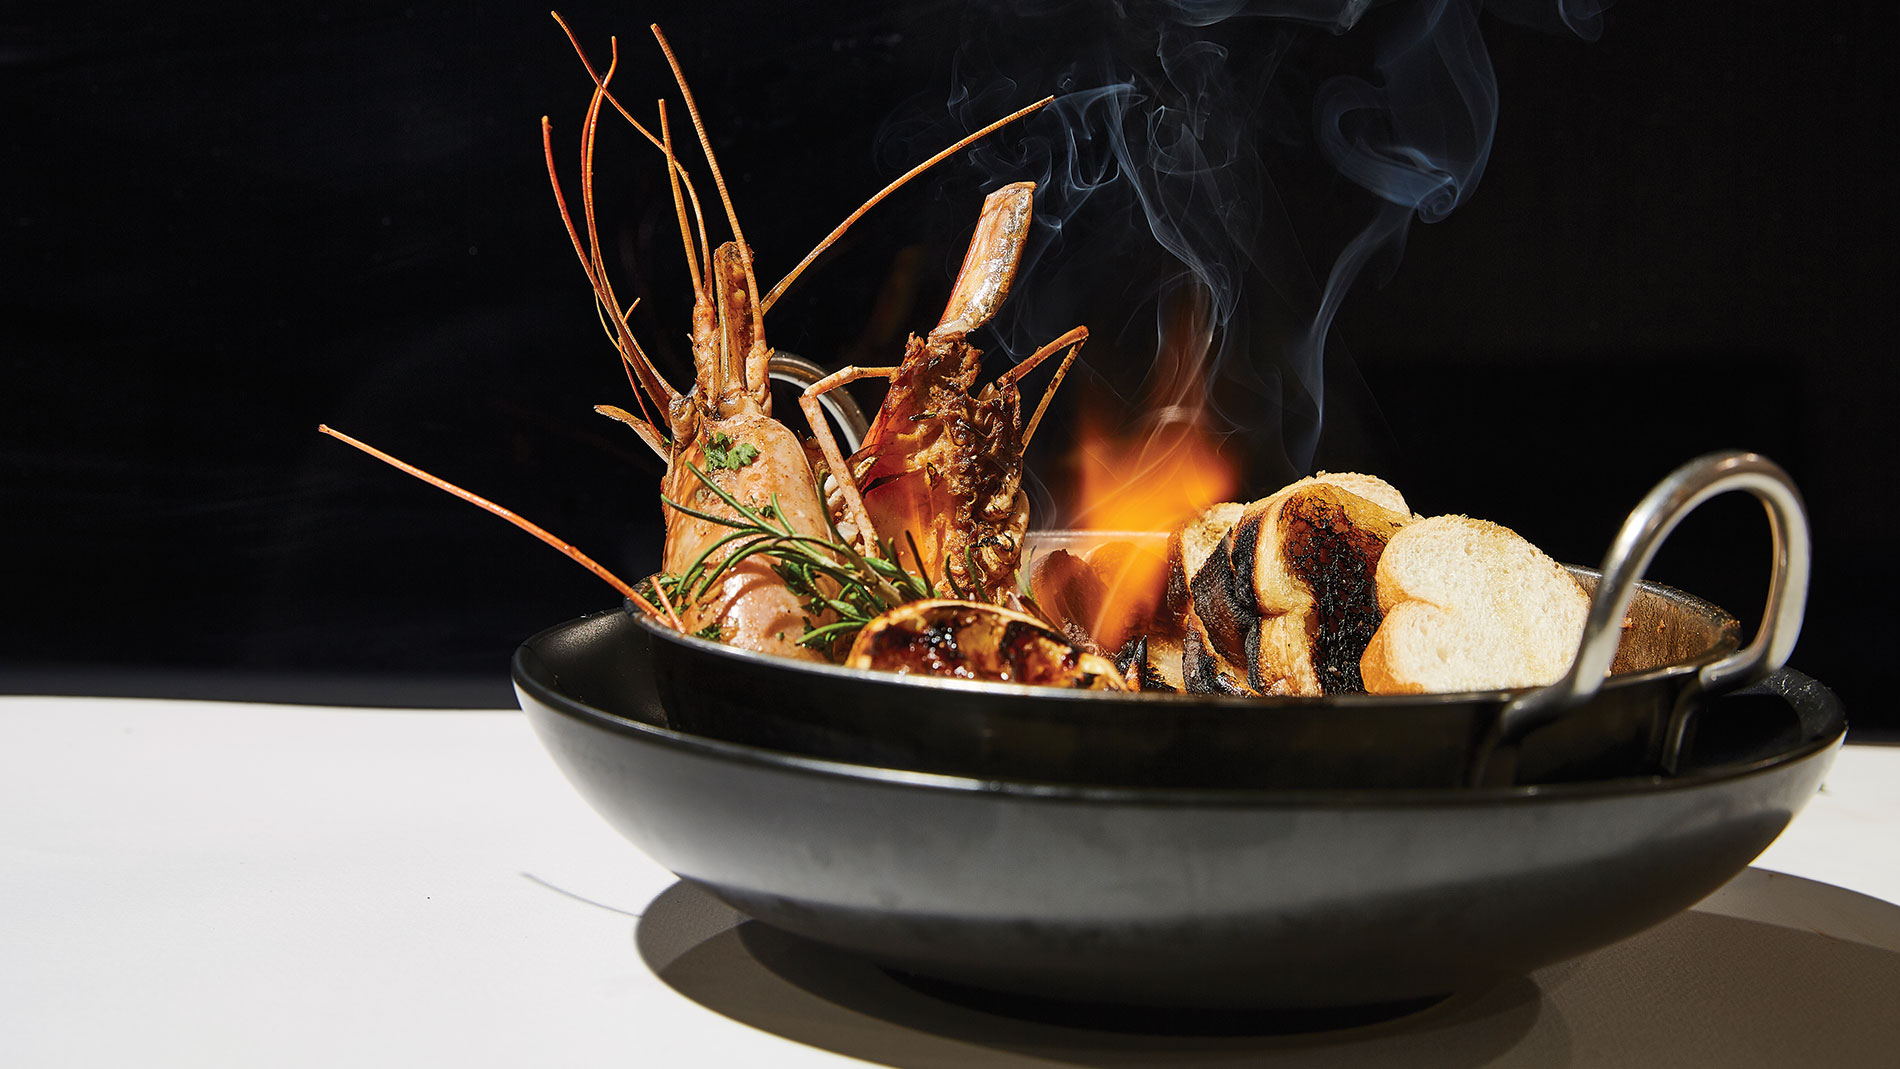 prawn cooking in a flame-filled black bowl